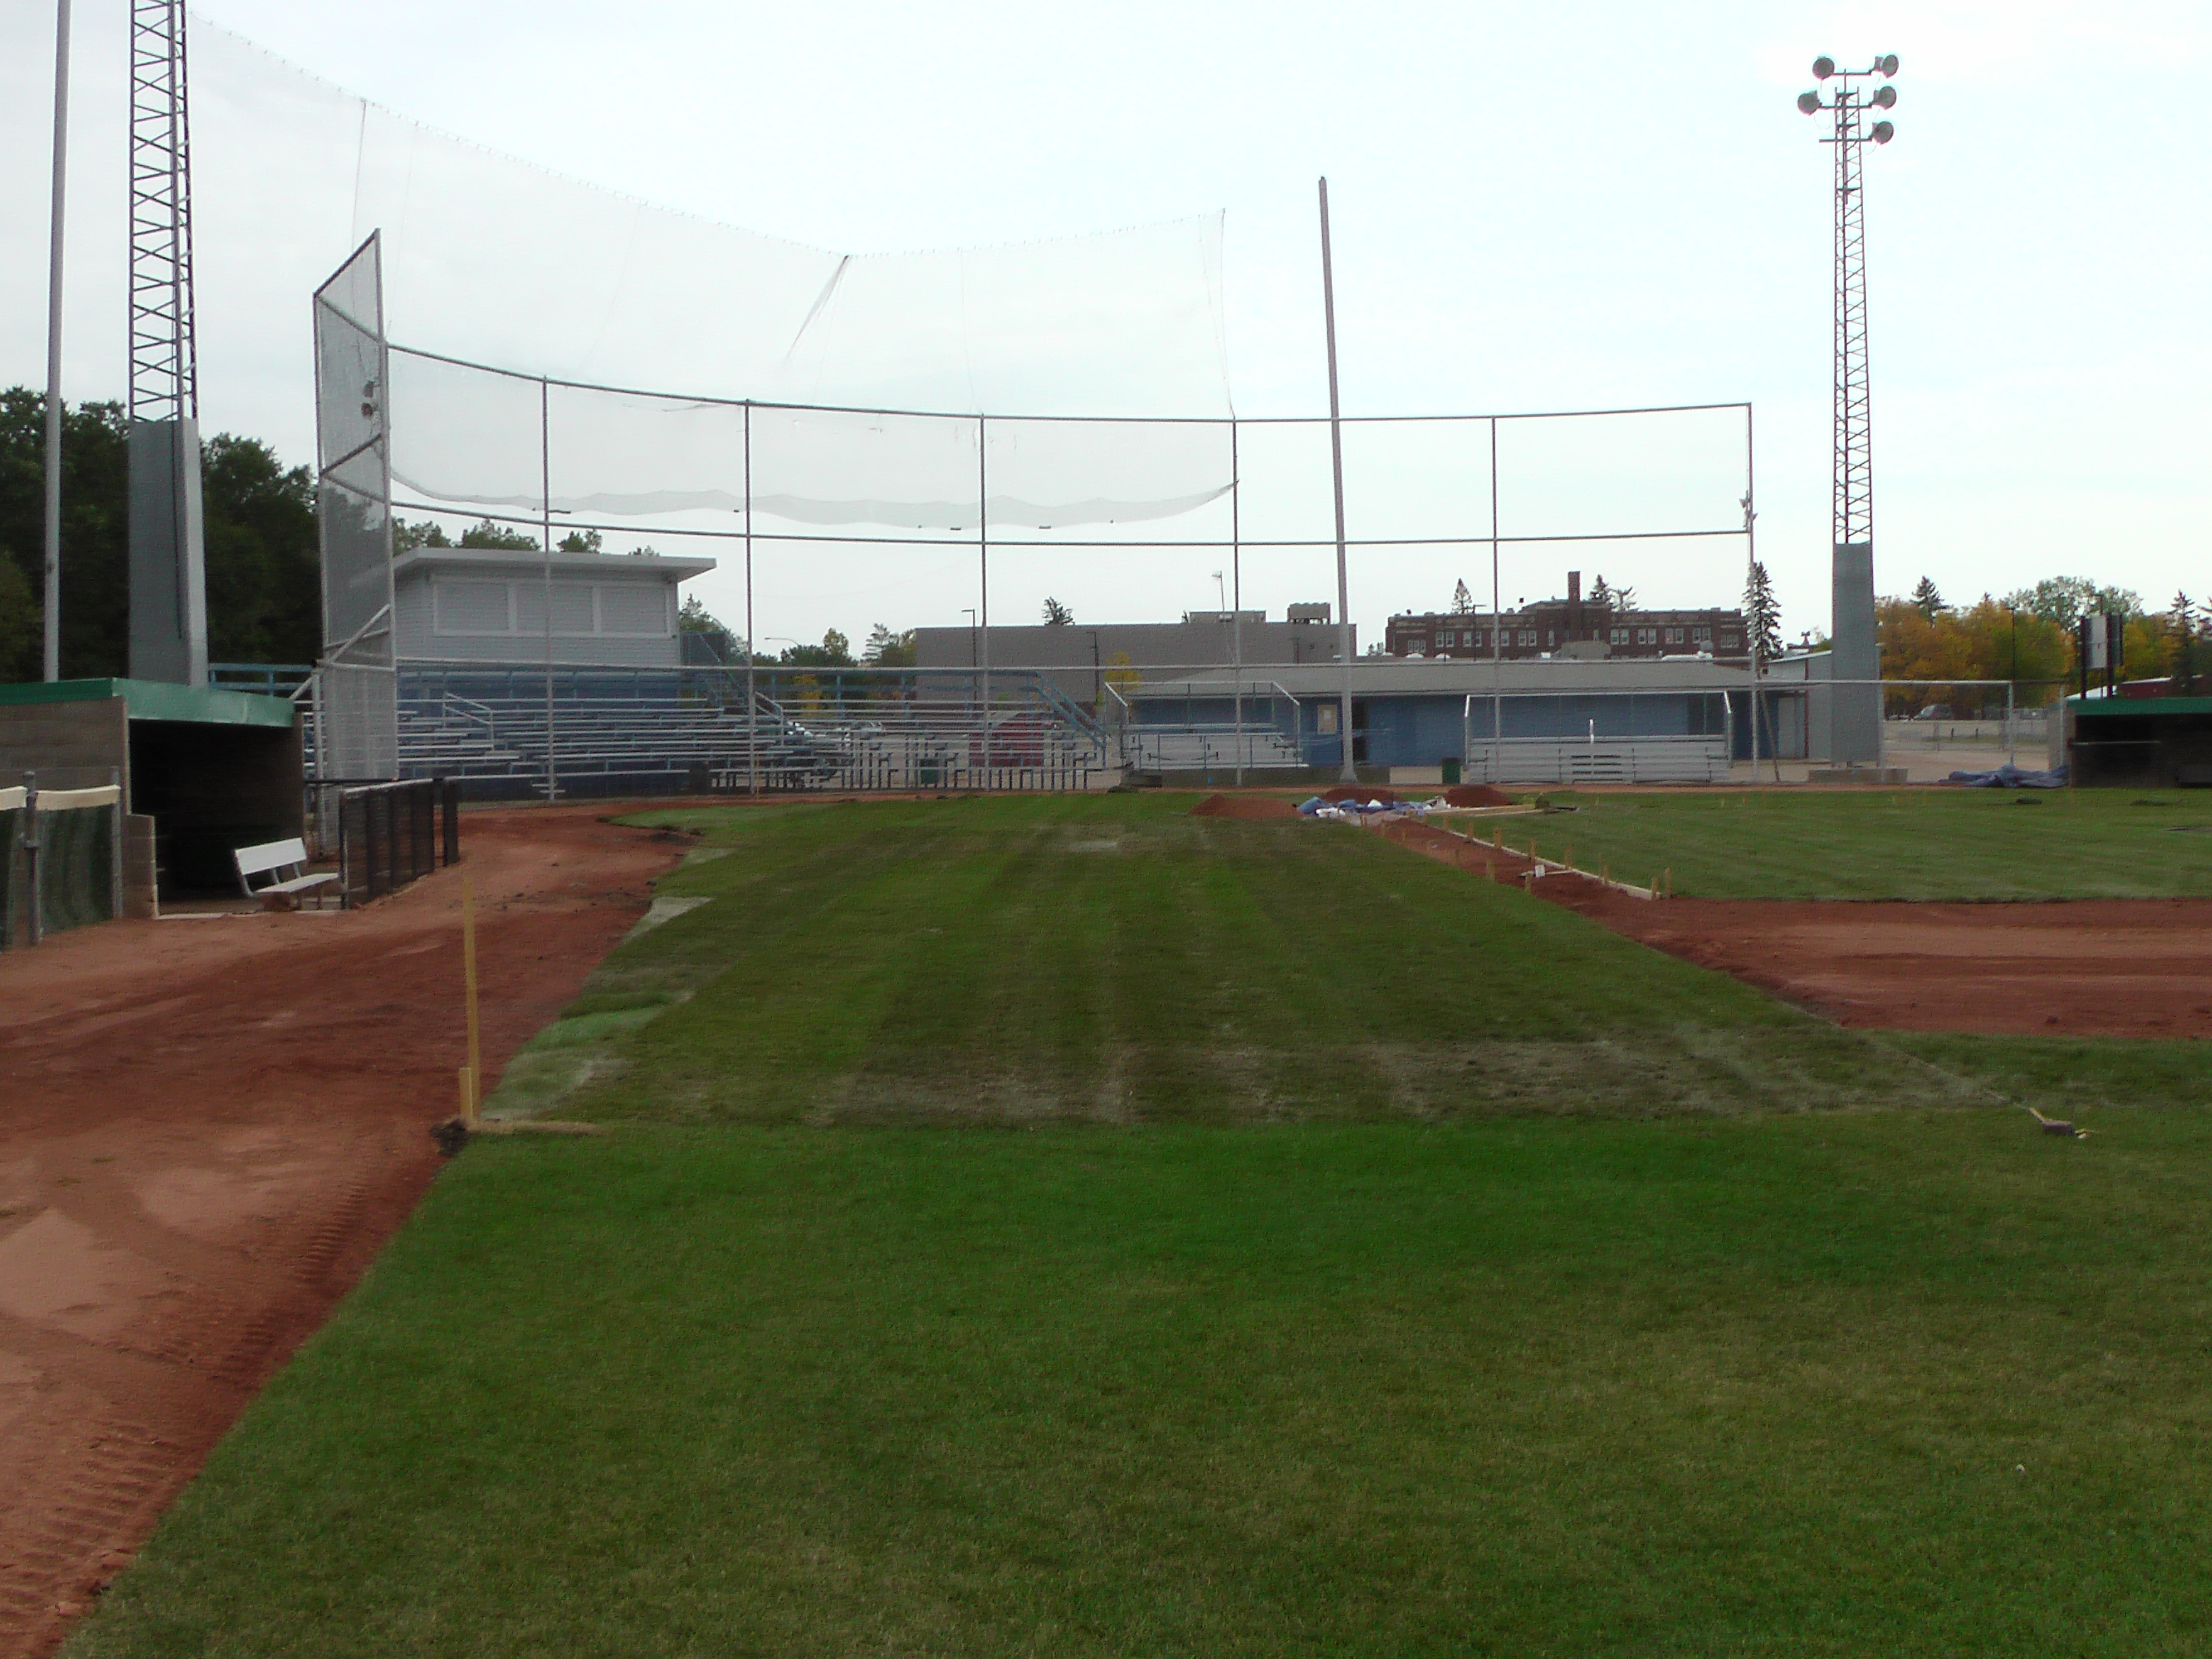 Sept 7 & 8 2018, Optimist Park Field Renovations, sod down being watered - Image 13